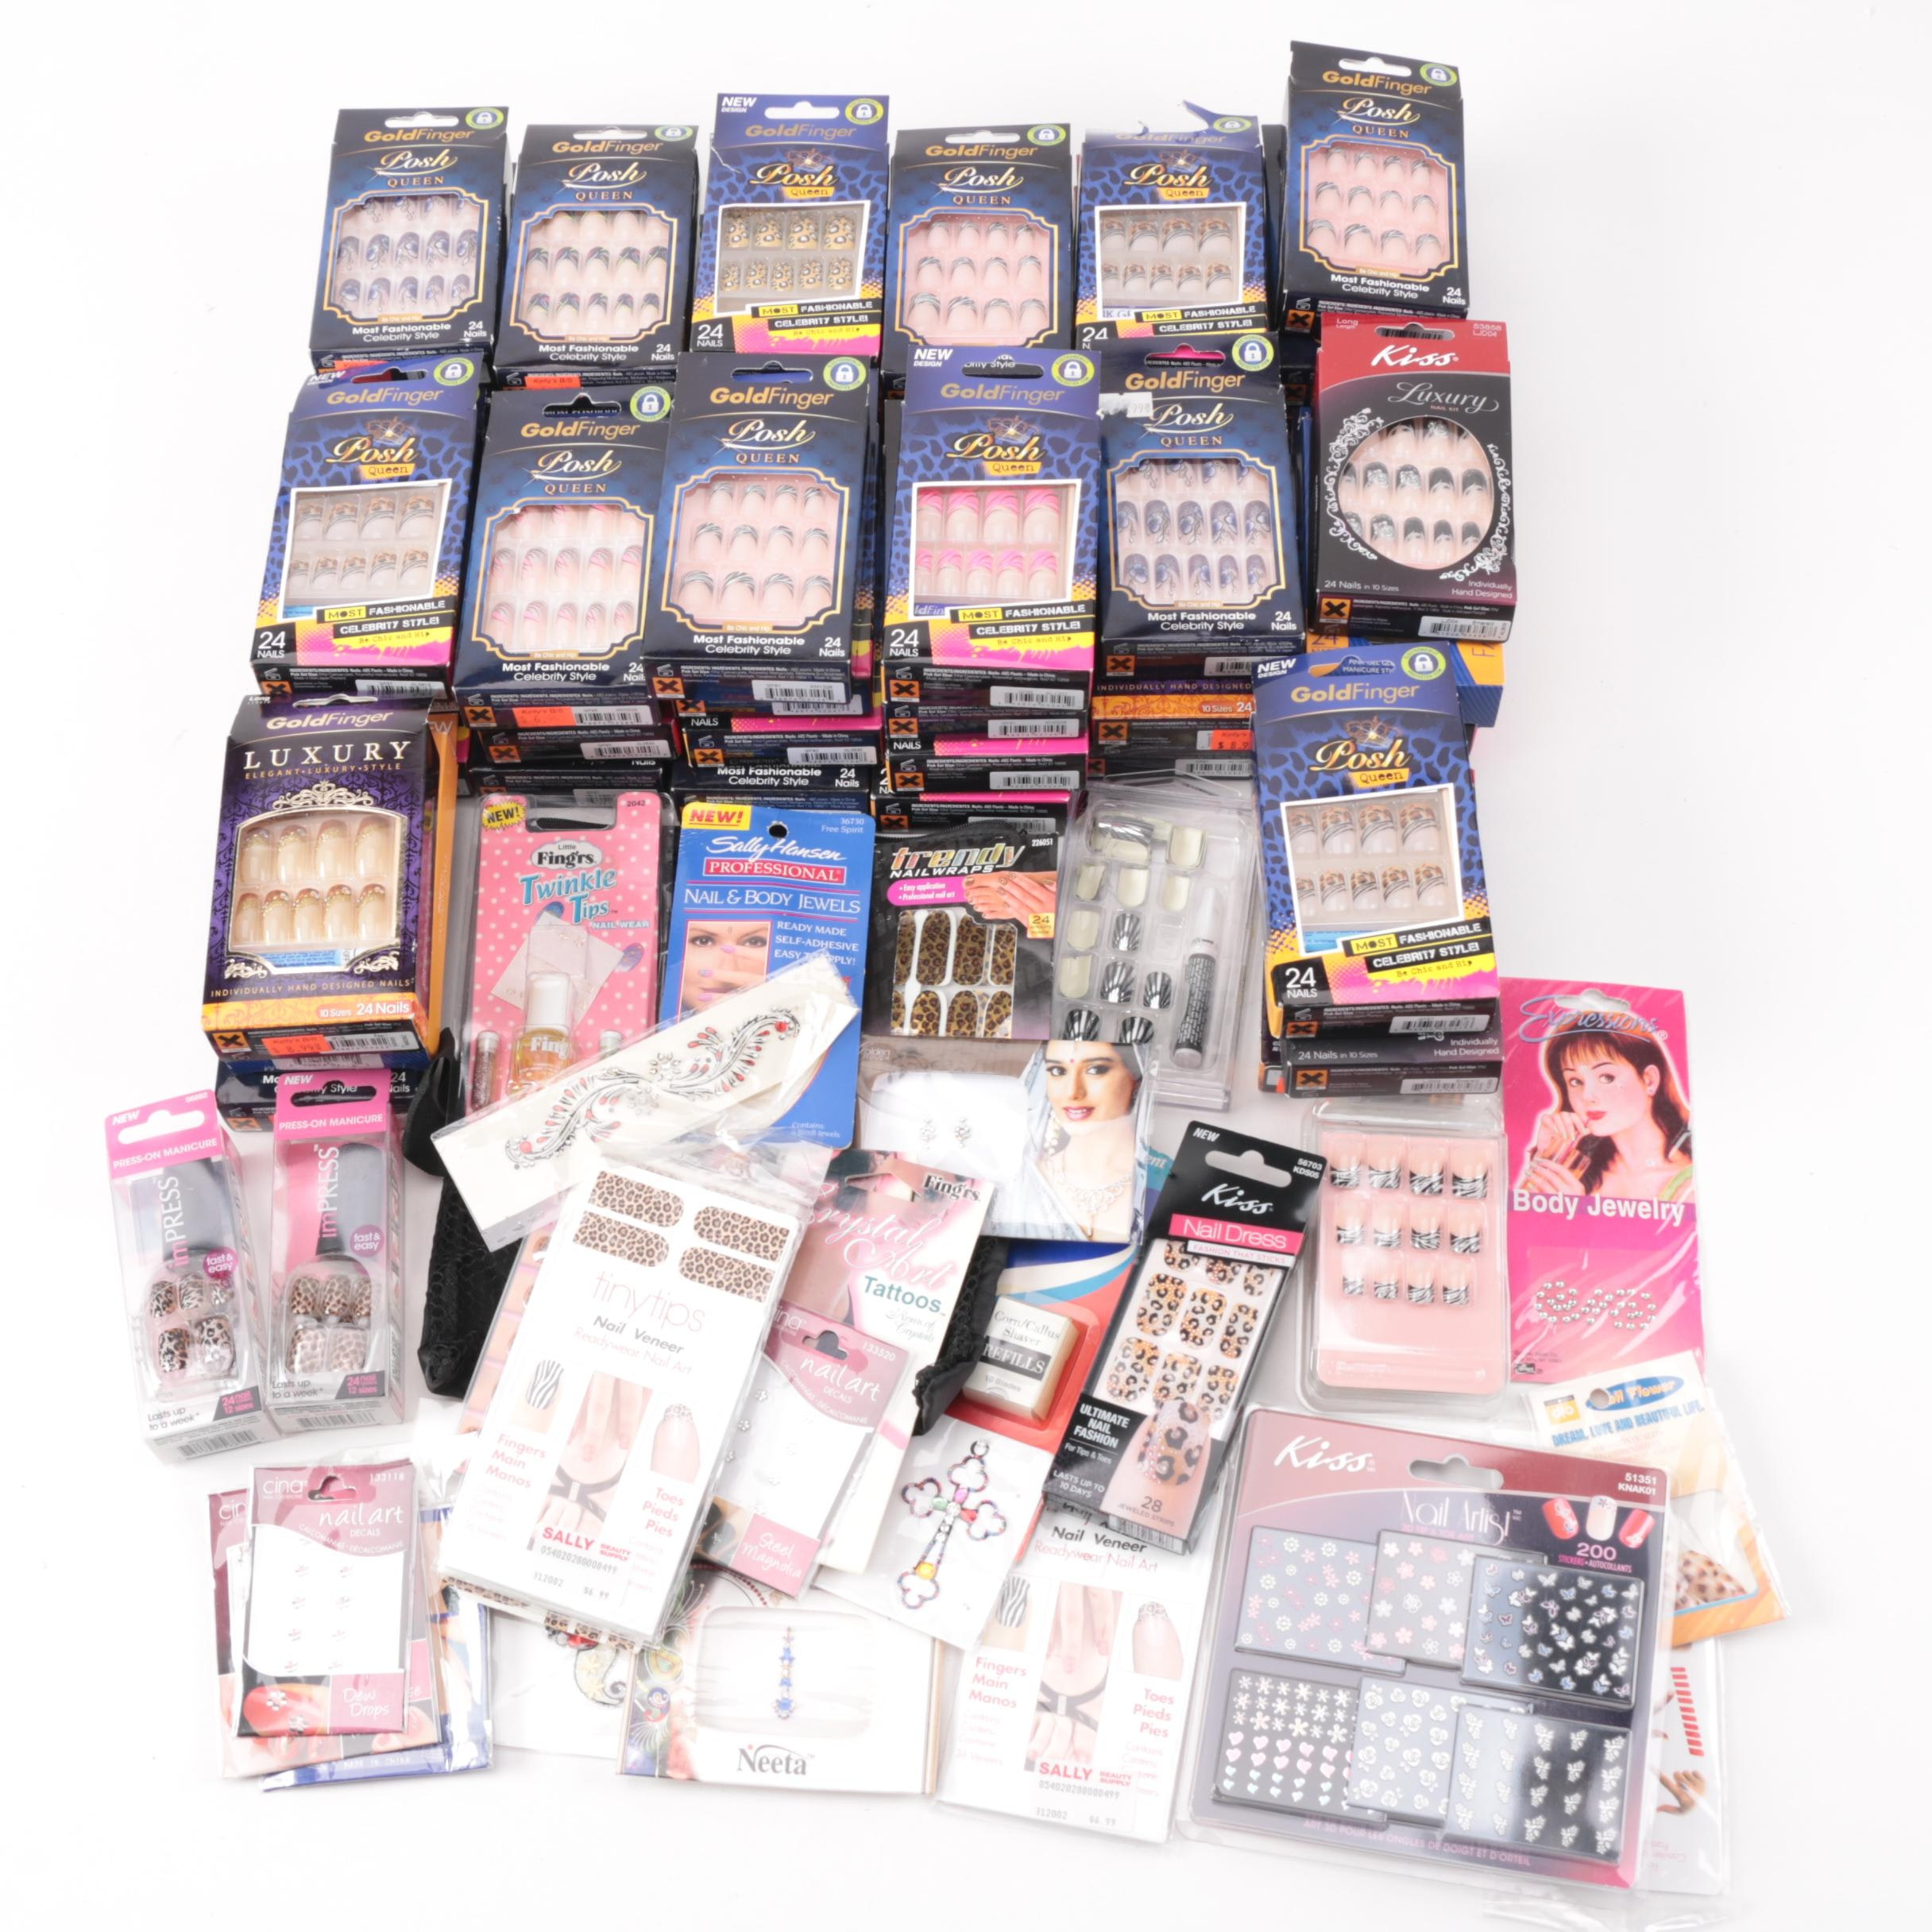 Artificial Nails, Body Jewelry and Grooming Accessories